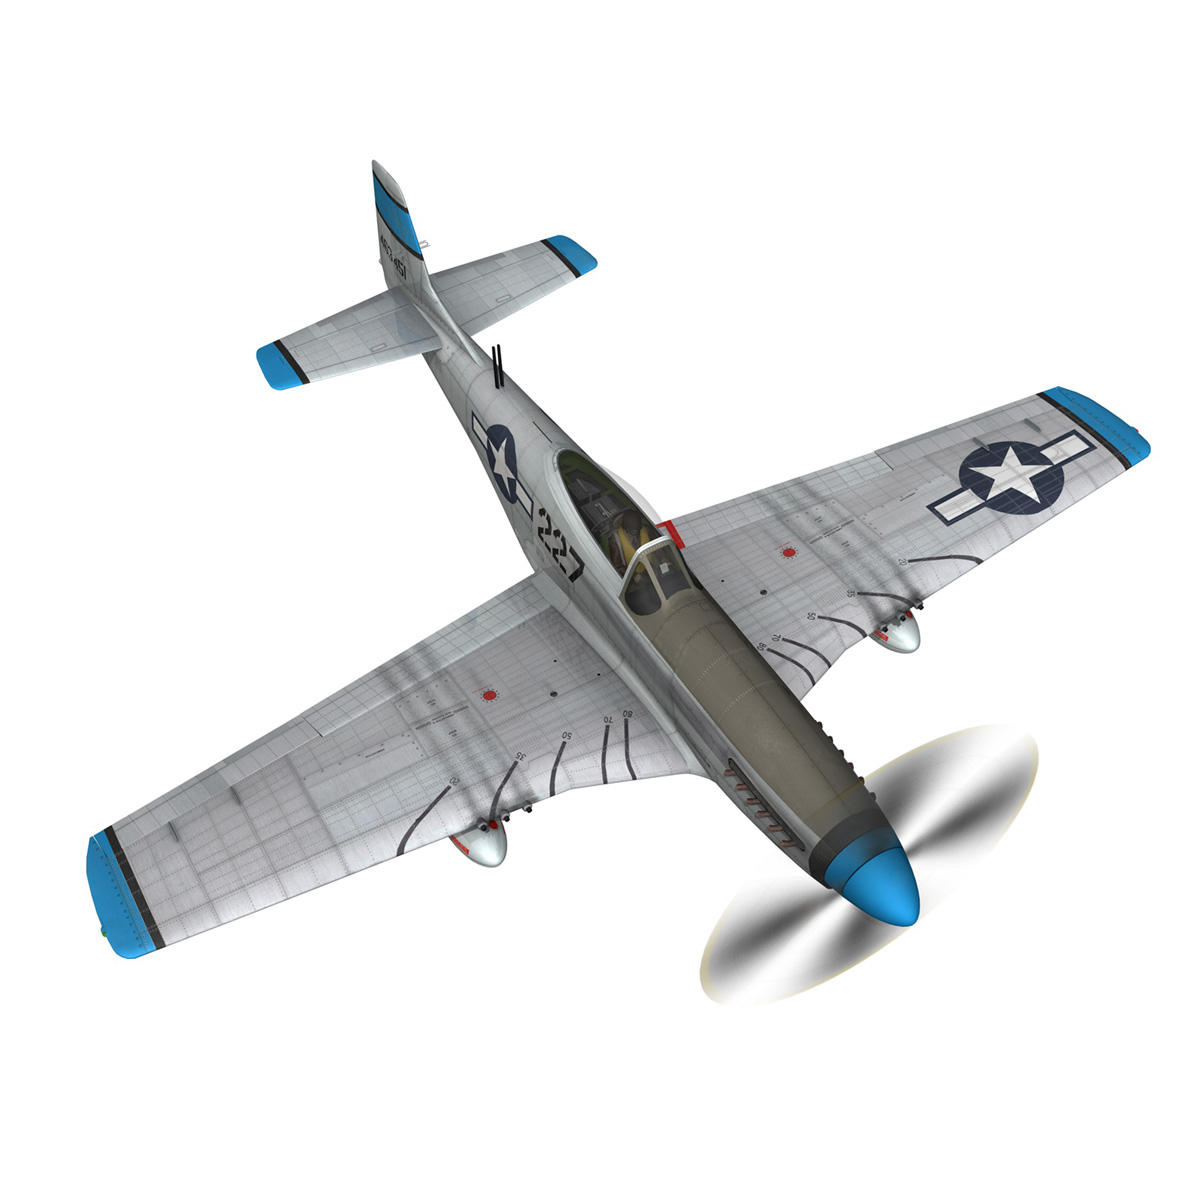 north american p-51d – mustang – mary alyce 3d model 3ds fbx c4d lwo obj 267574